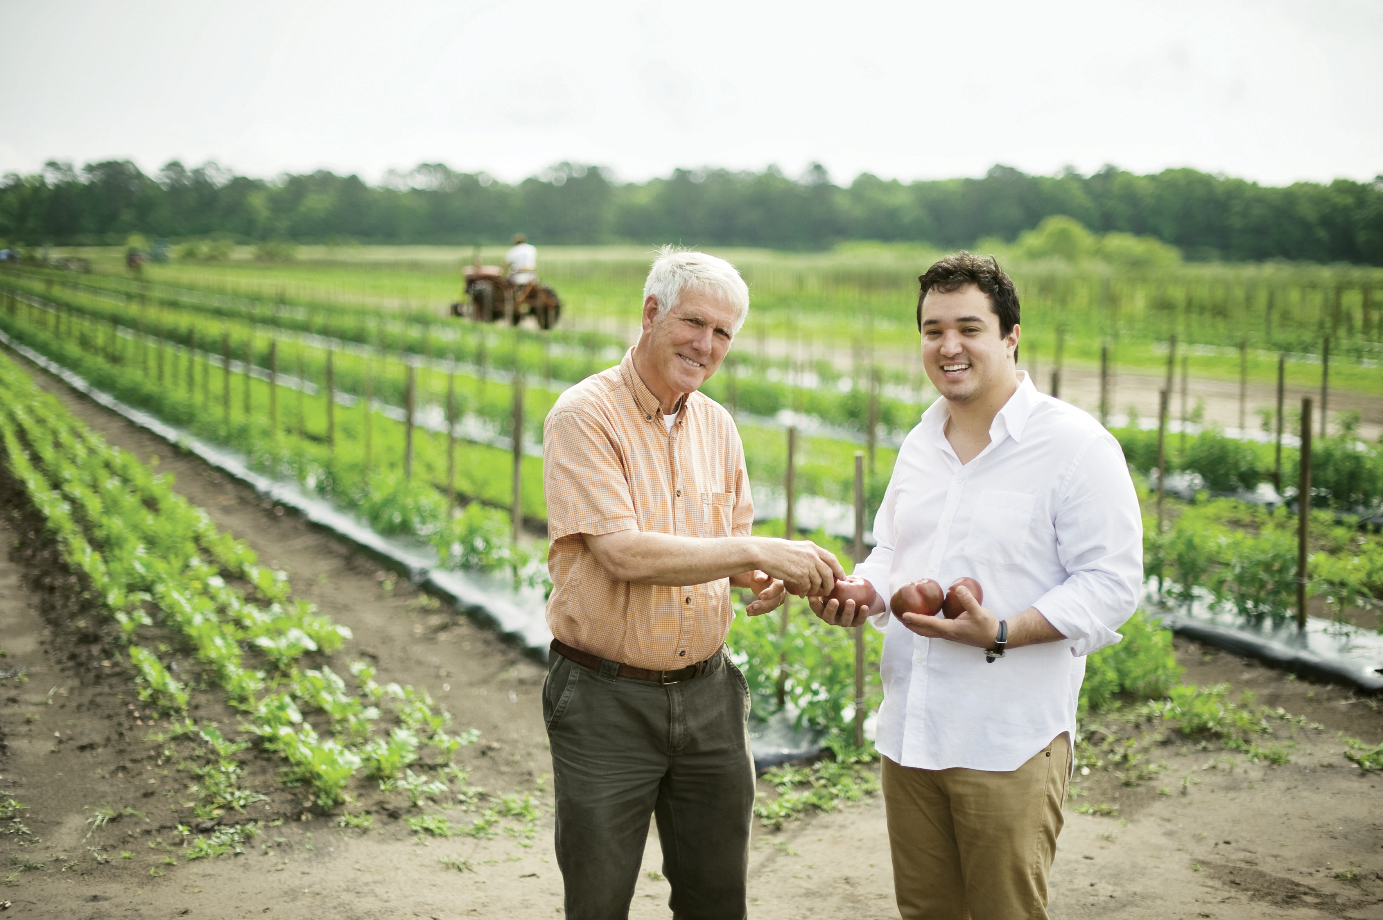 FIG chef Jason Stanhope, right, with farmer Pete Ambrose